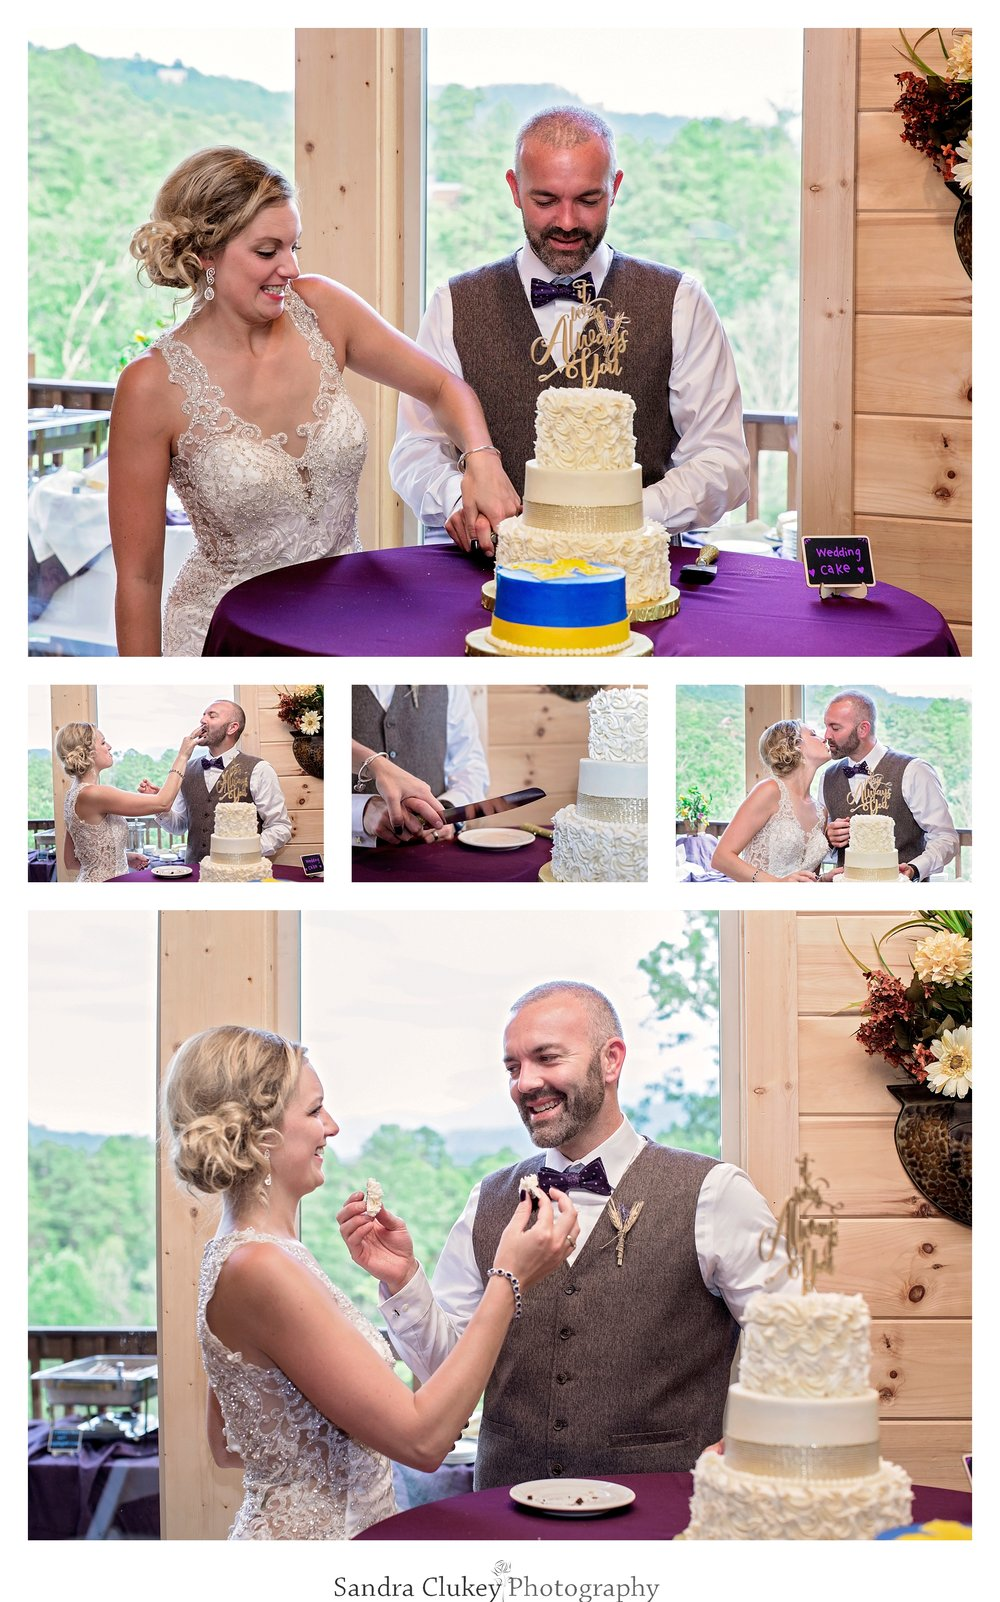 Ceremonial cutting of the cake